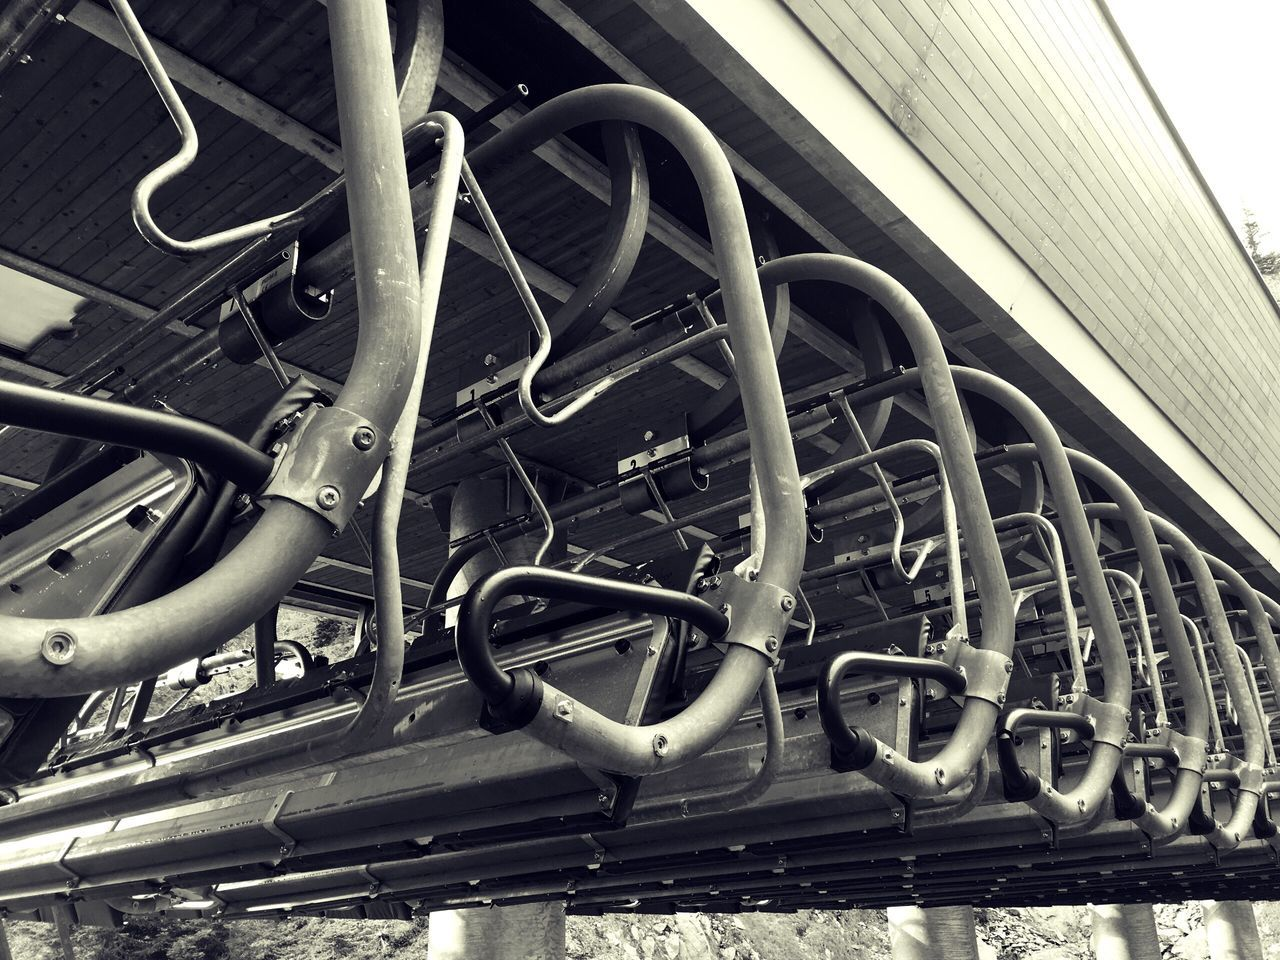 Transportation Metal No People Industry Close-up Outdoors Engine Day Air Conditioner Ski Lift Ski Resort  Off Season Monochrome Photography Mountain